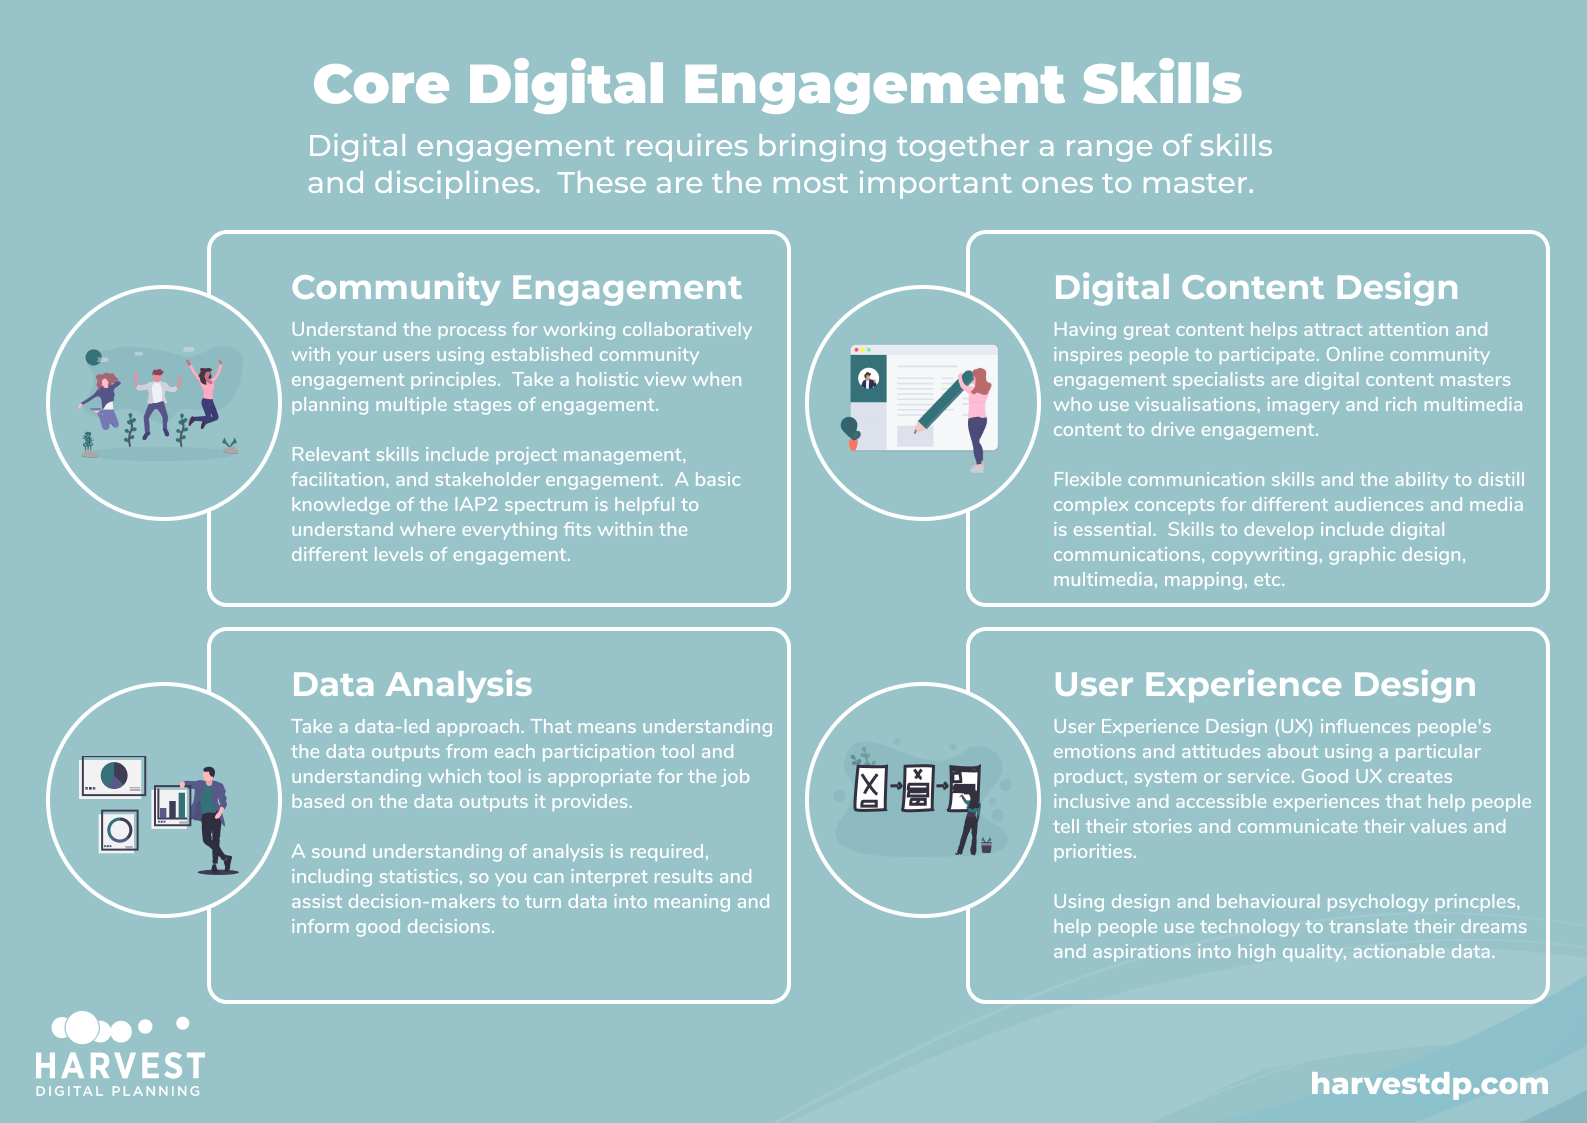 Top four digital engagement skills